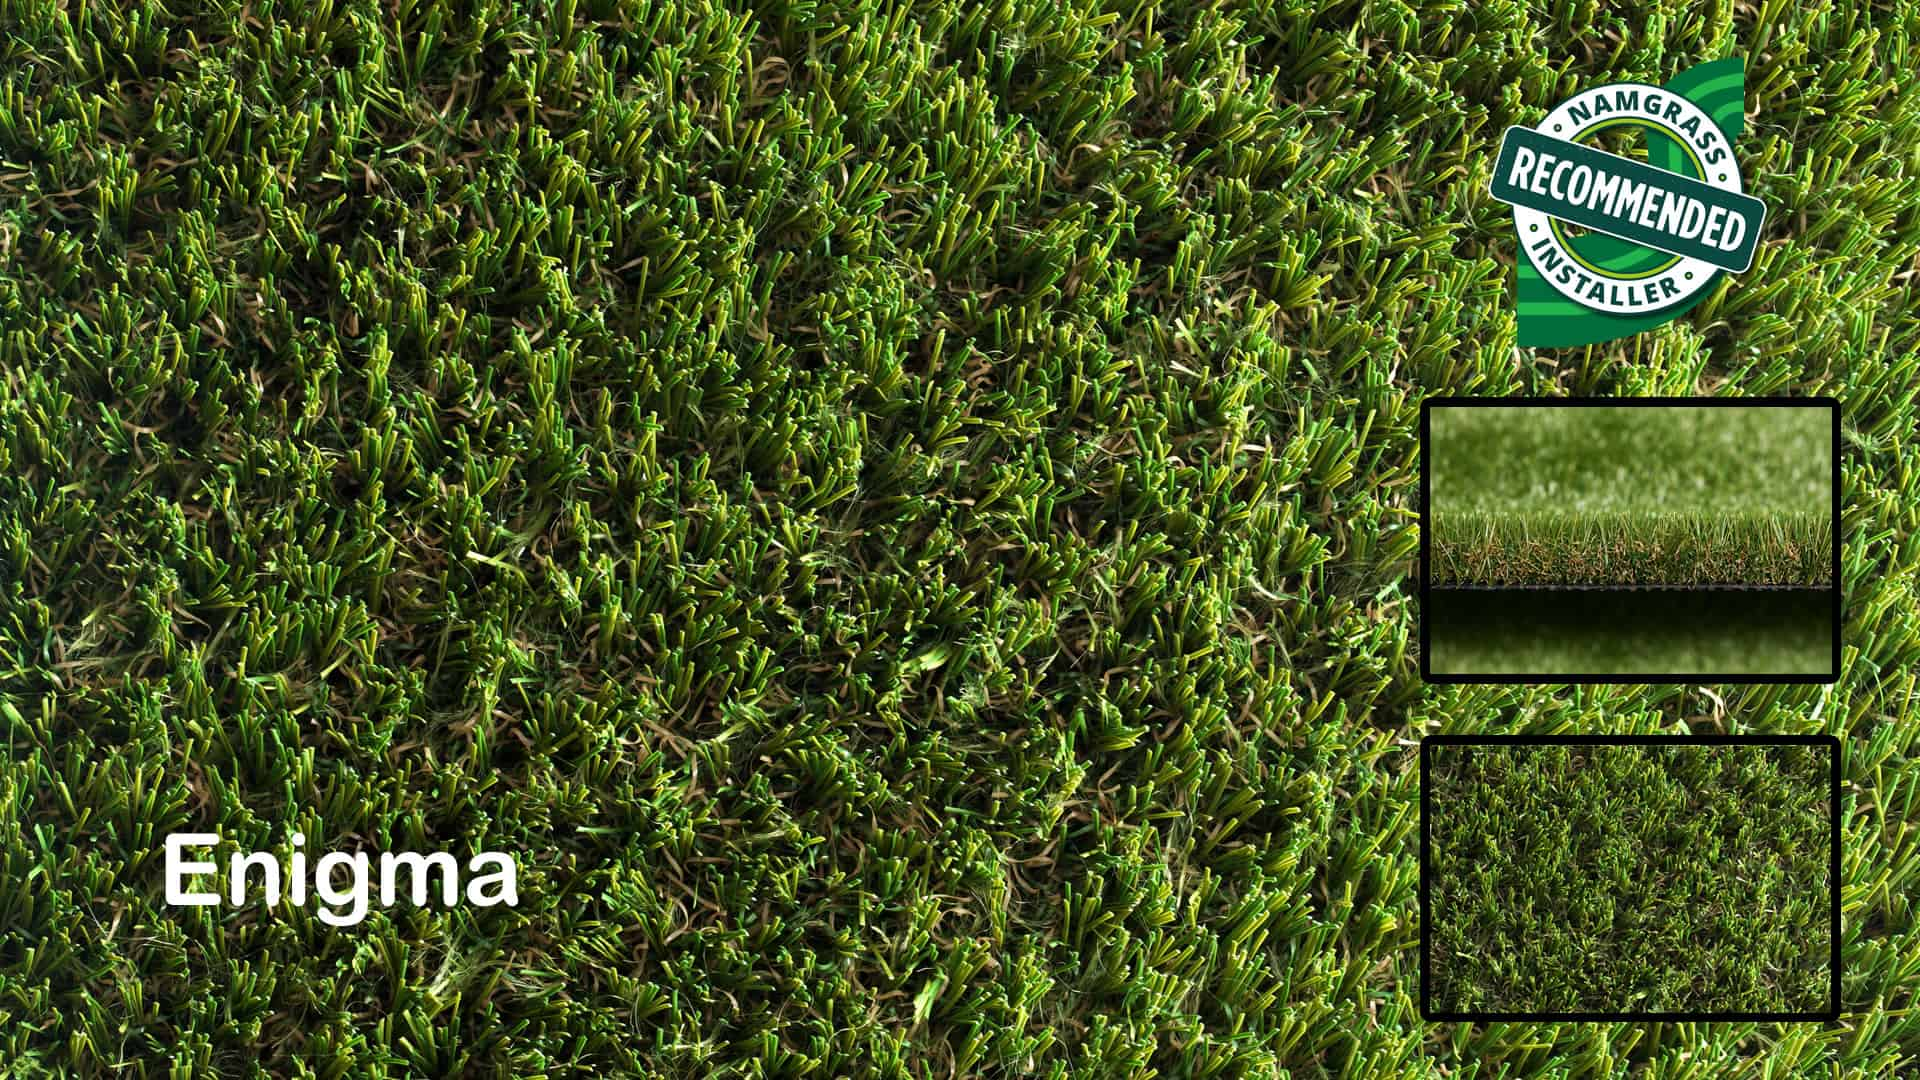 Enigma Namgrass artificial grass